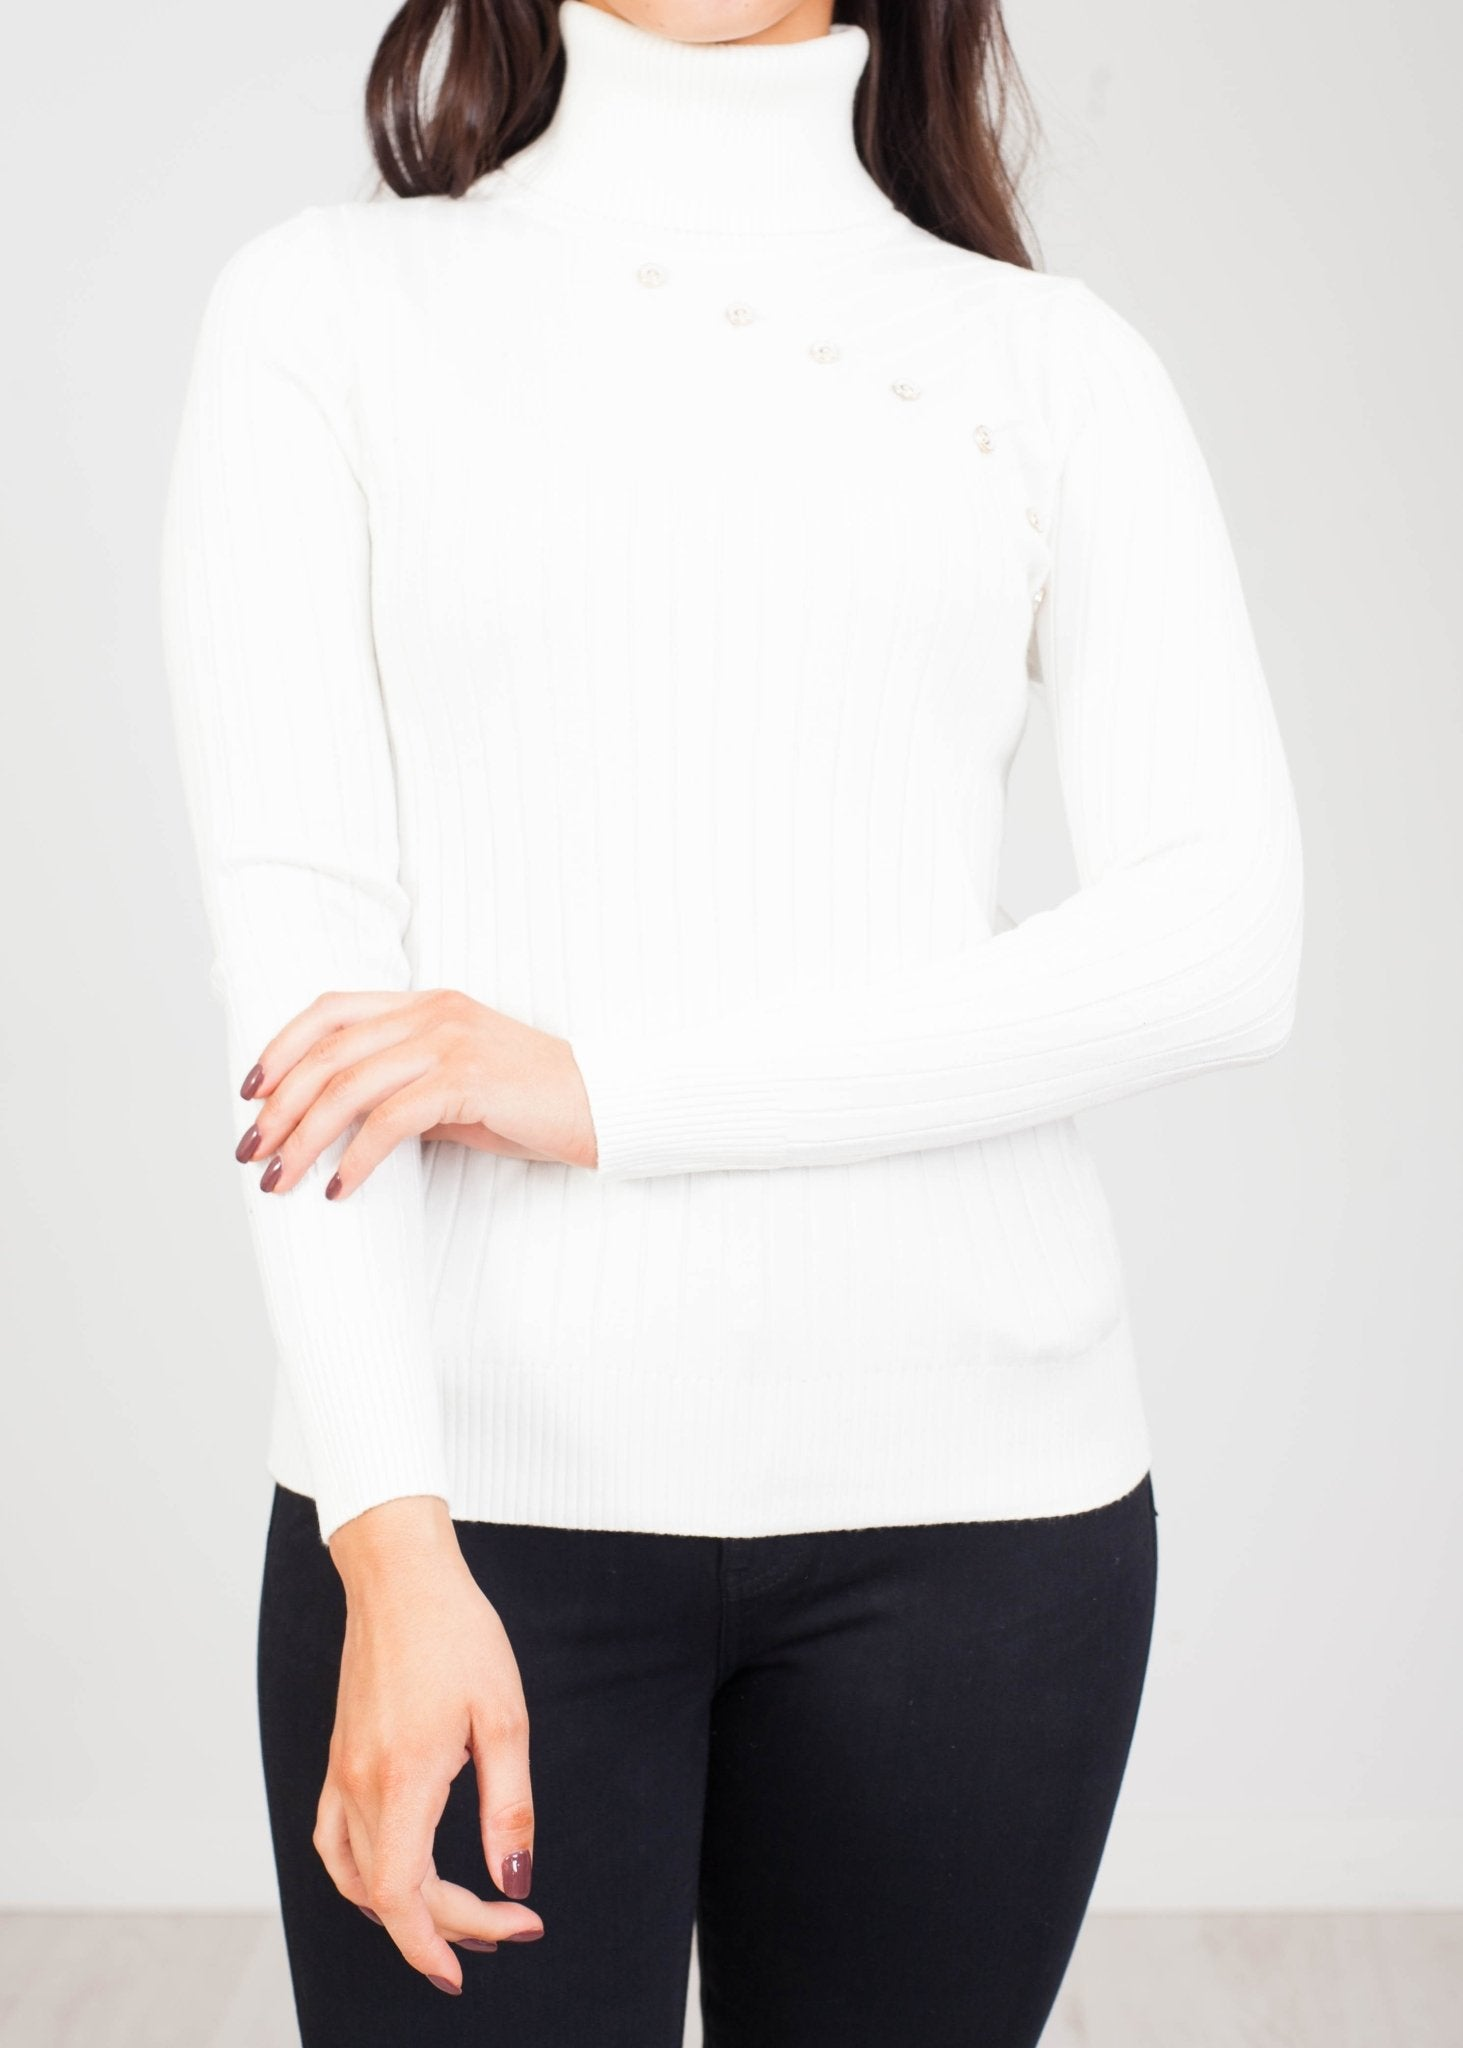 Priya Polo Neck with Buttons in Cream - The Walk in Wardrobe